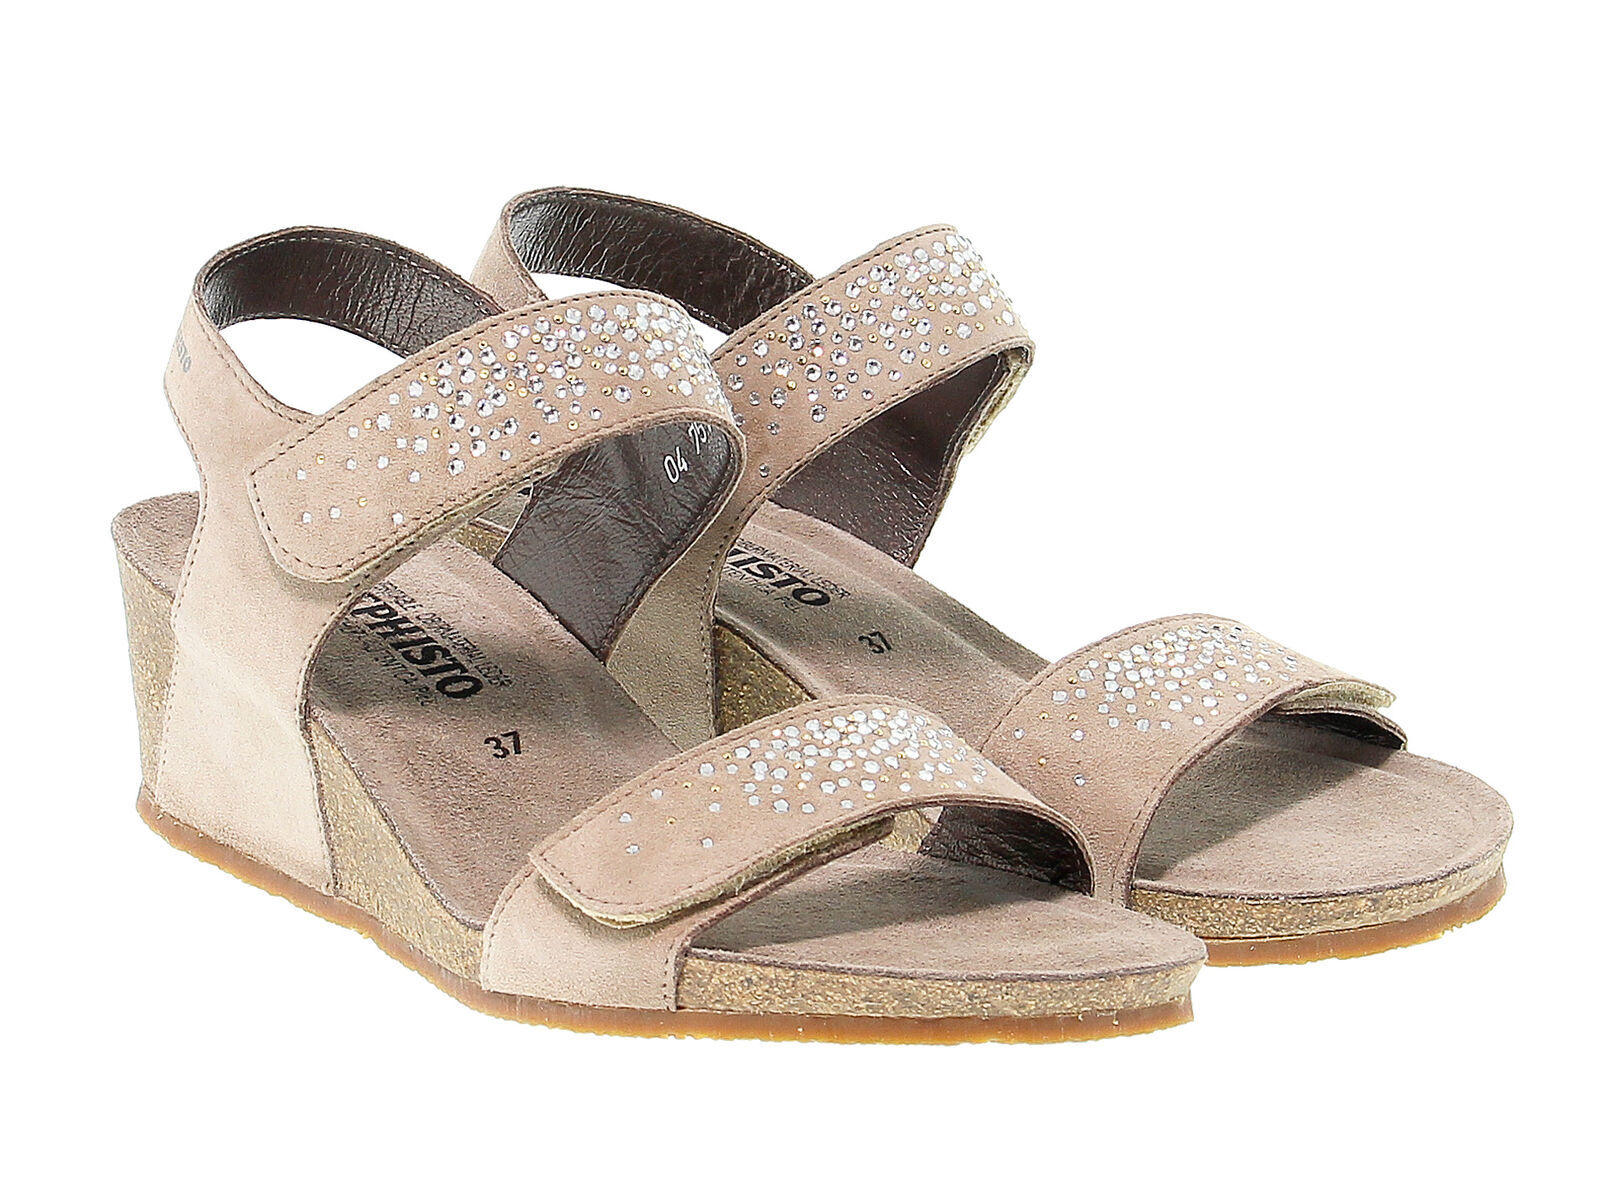 Heeled sandal MEPHISTO MARIA in taupe suede leather - Women's Shoes